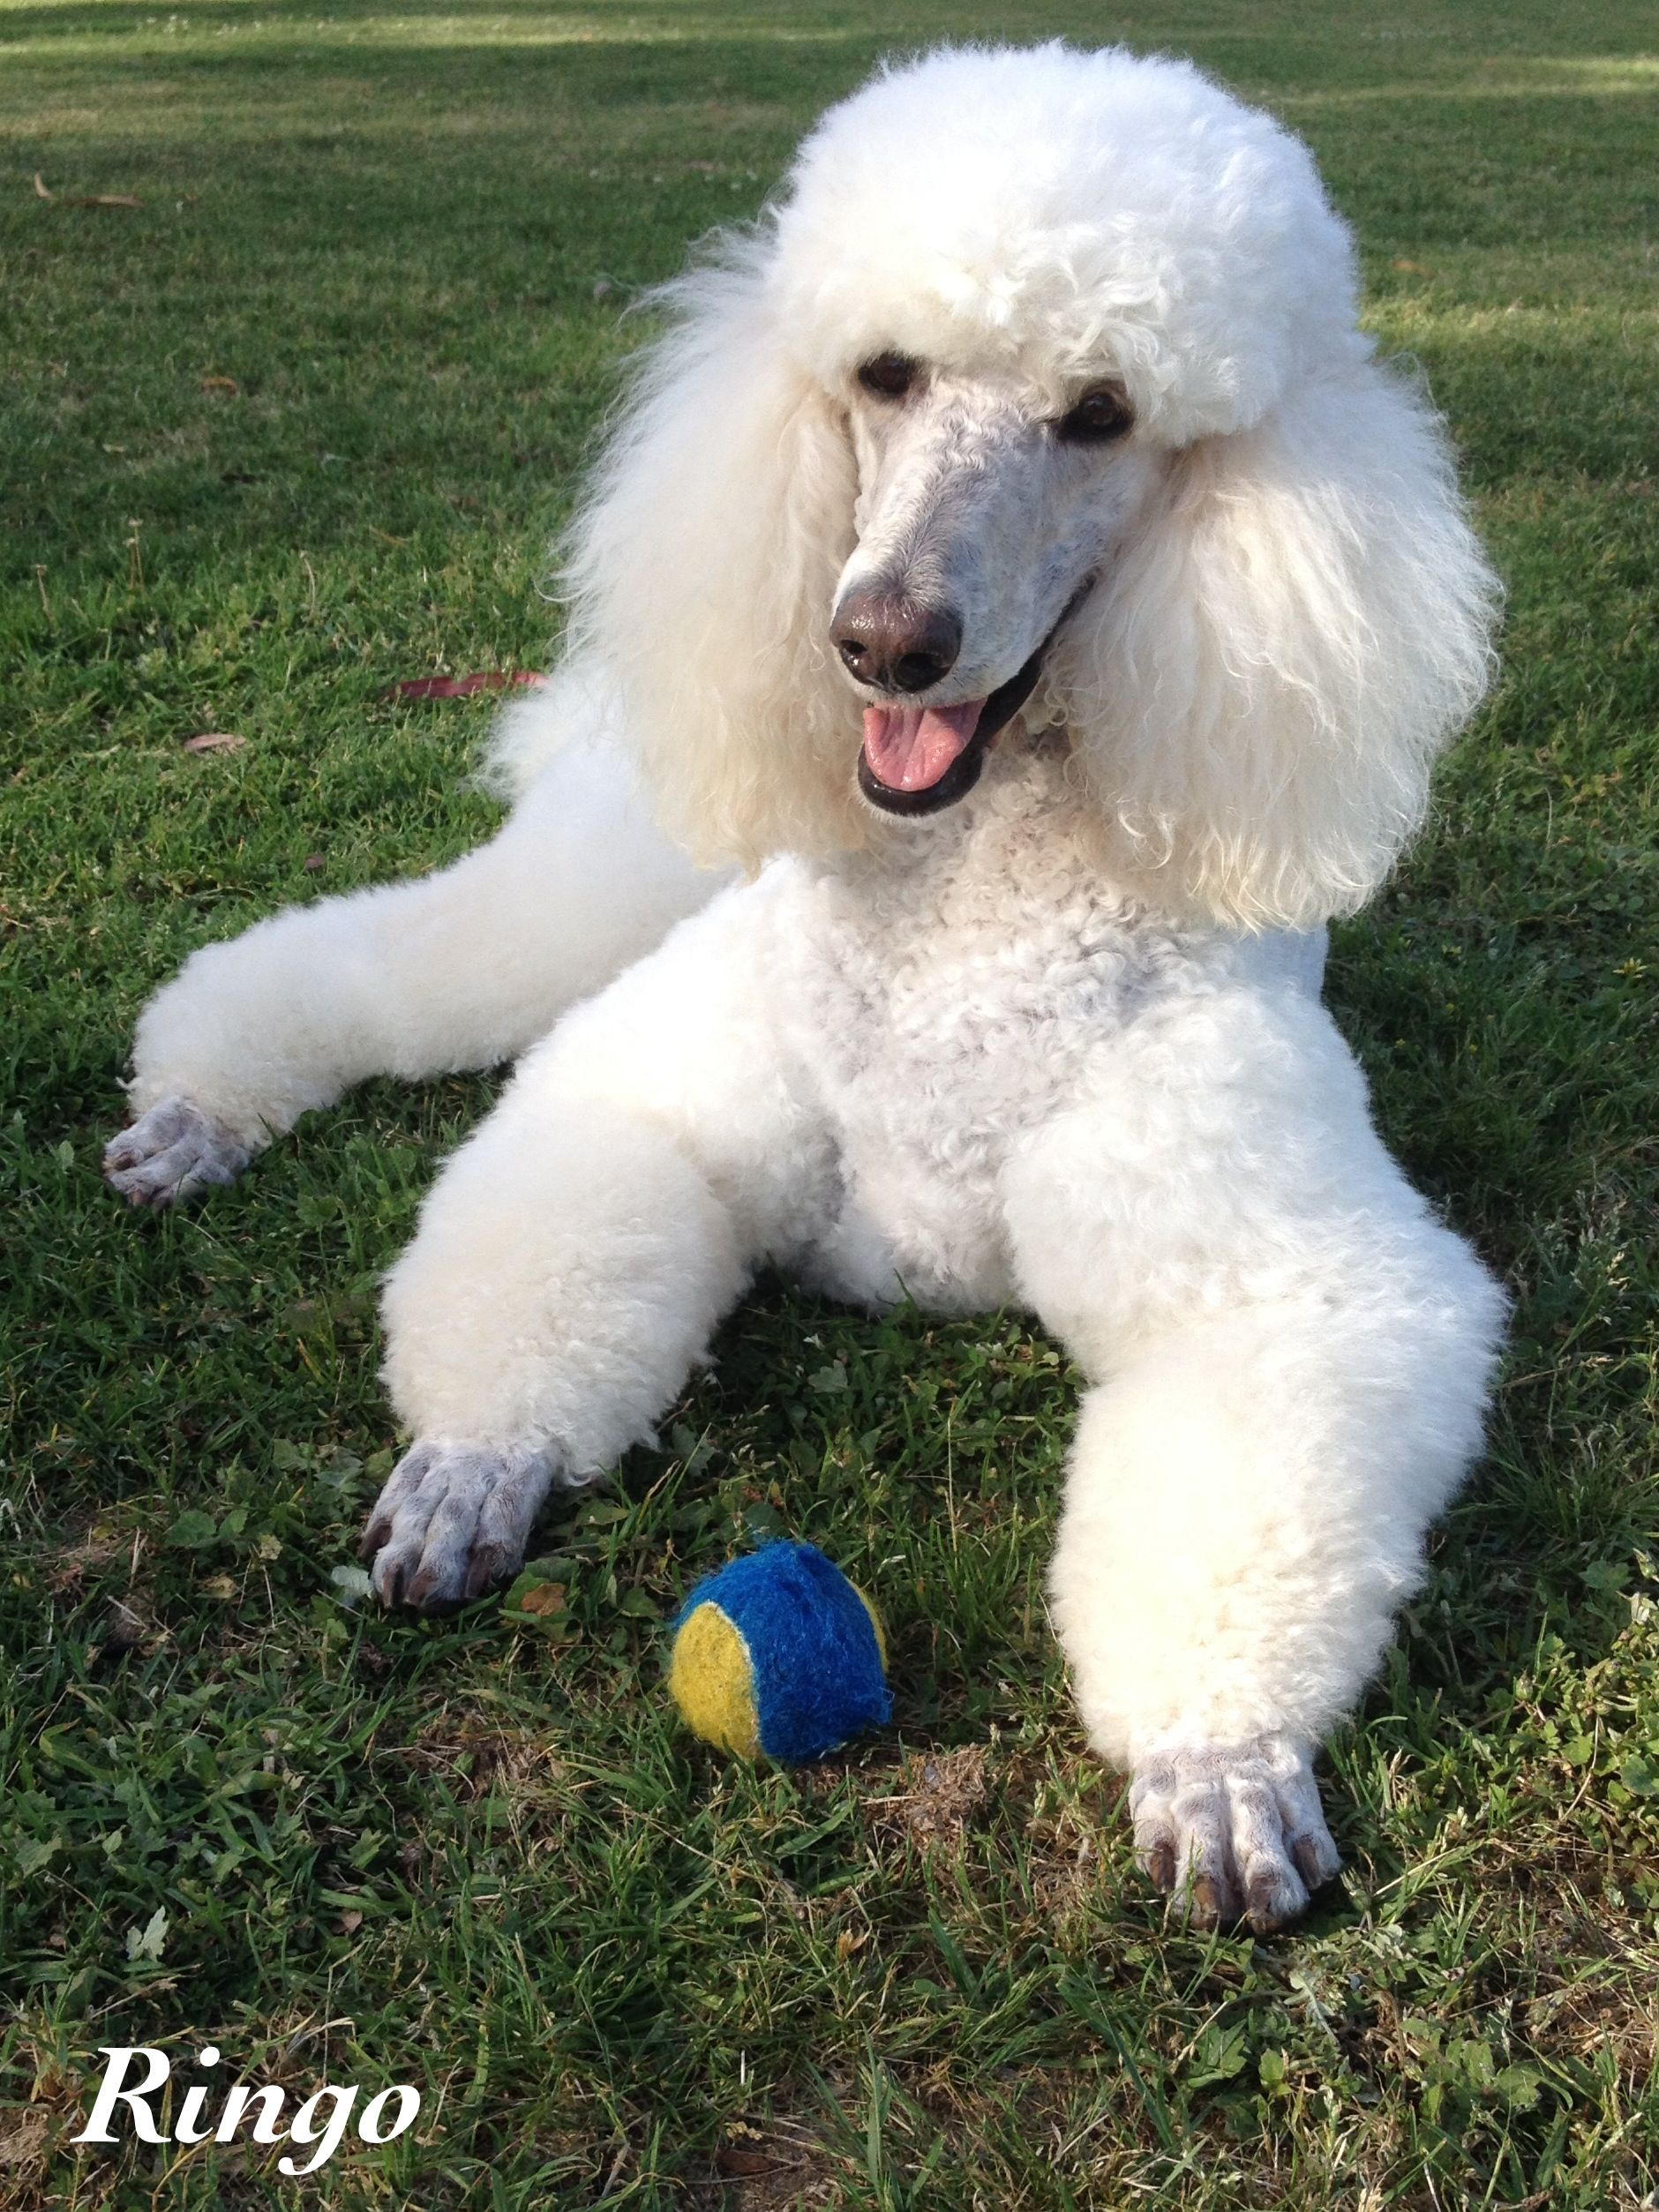 Ringo Me And My Squeaky Ball We Love Each Other Poodle Dog